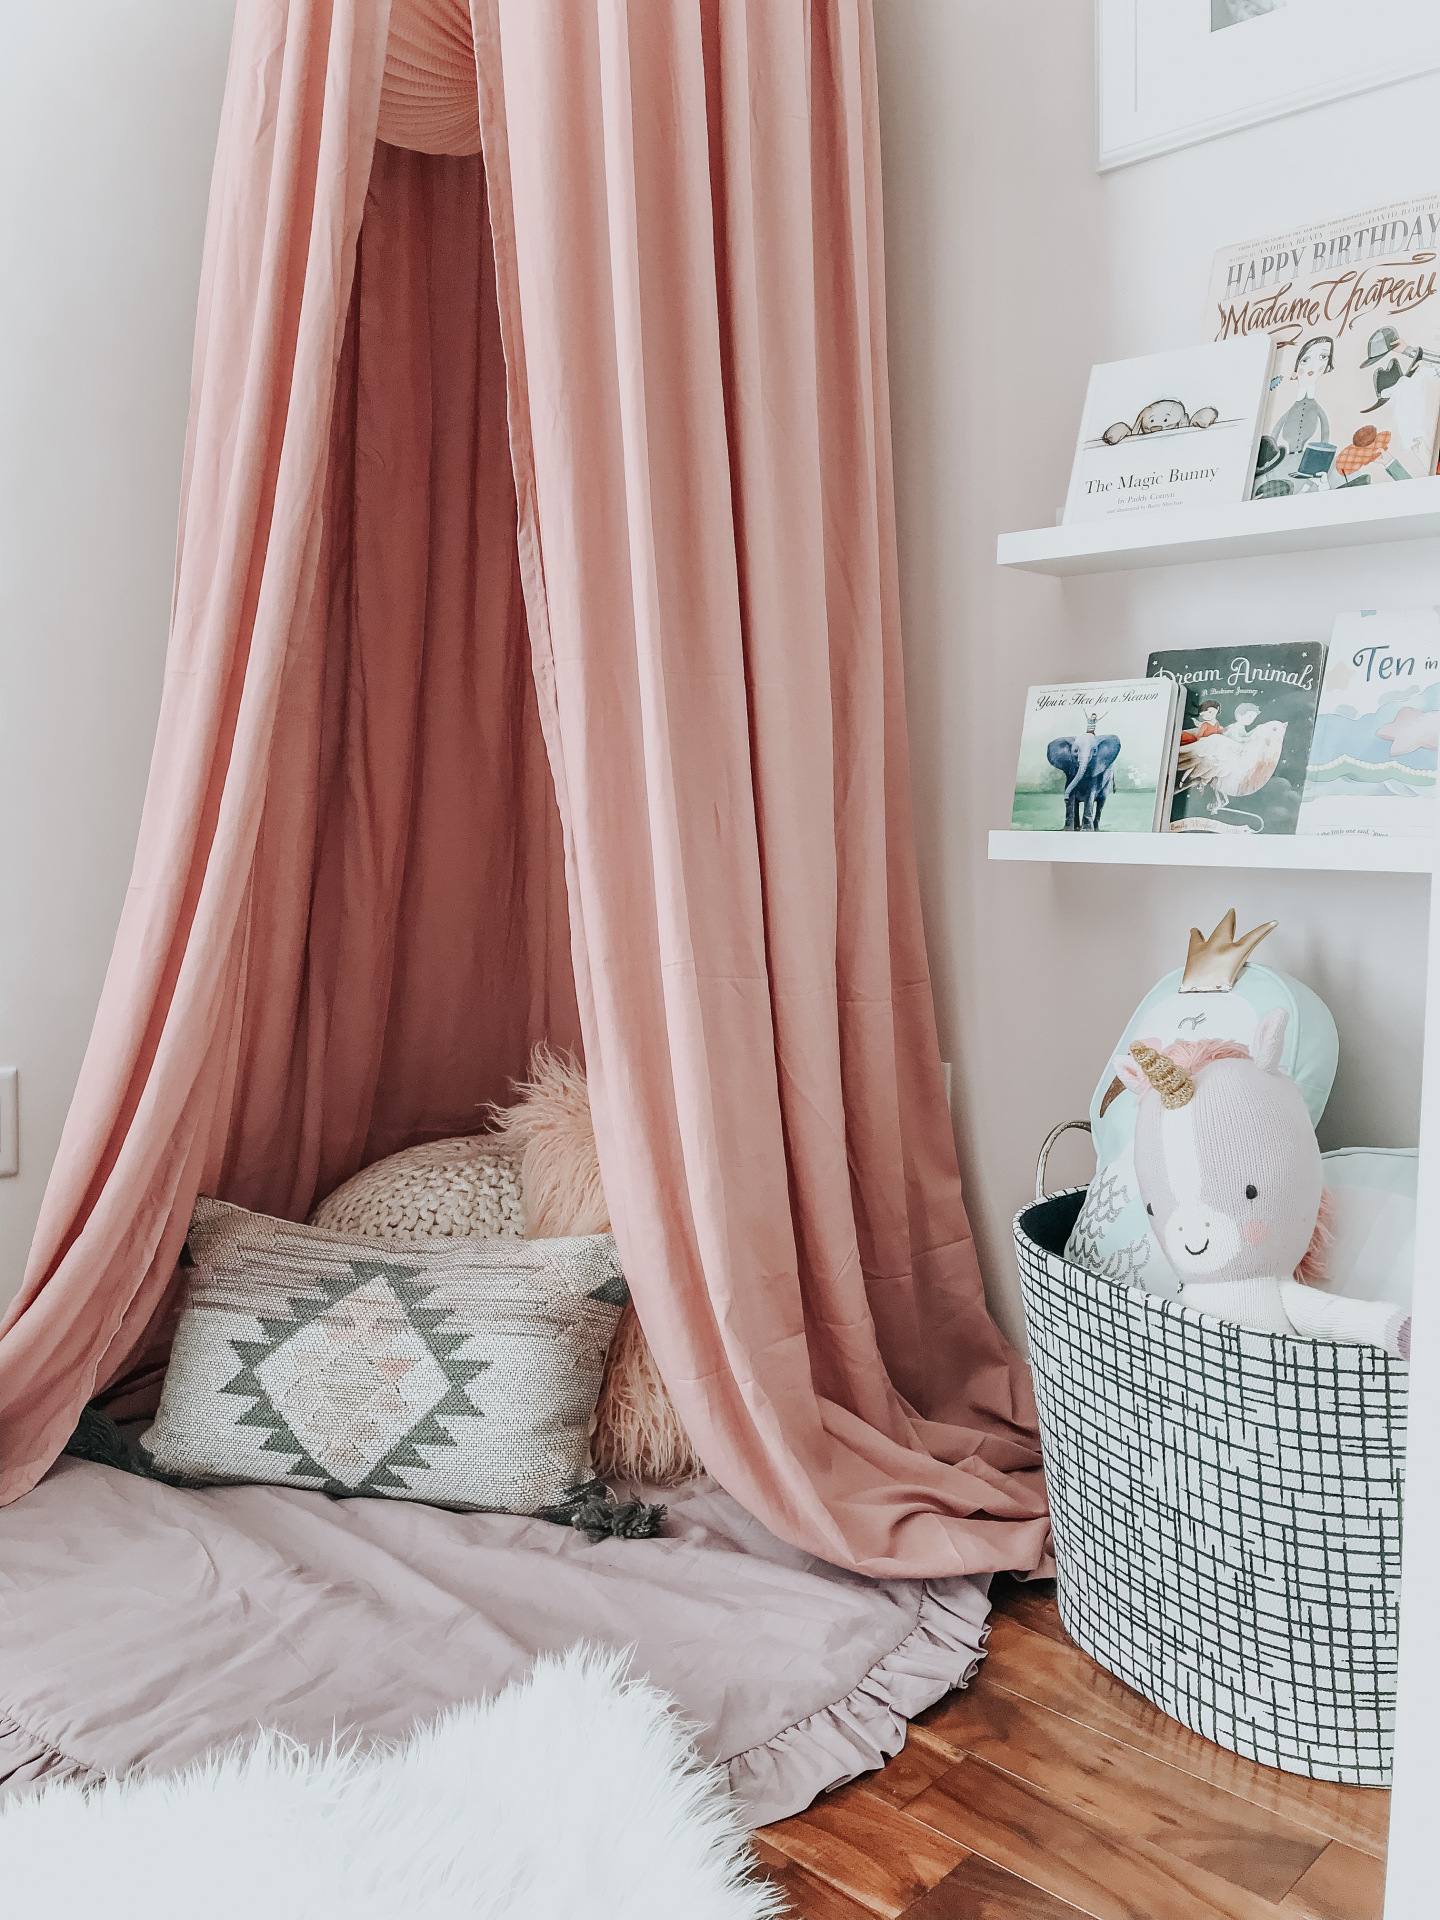 Behold, 8 Magical Girls Bedroom Ideas That Are as Dreamy as Can Be